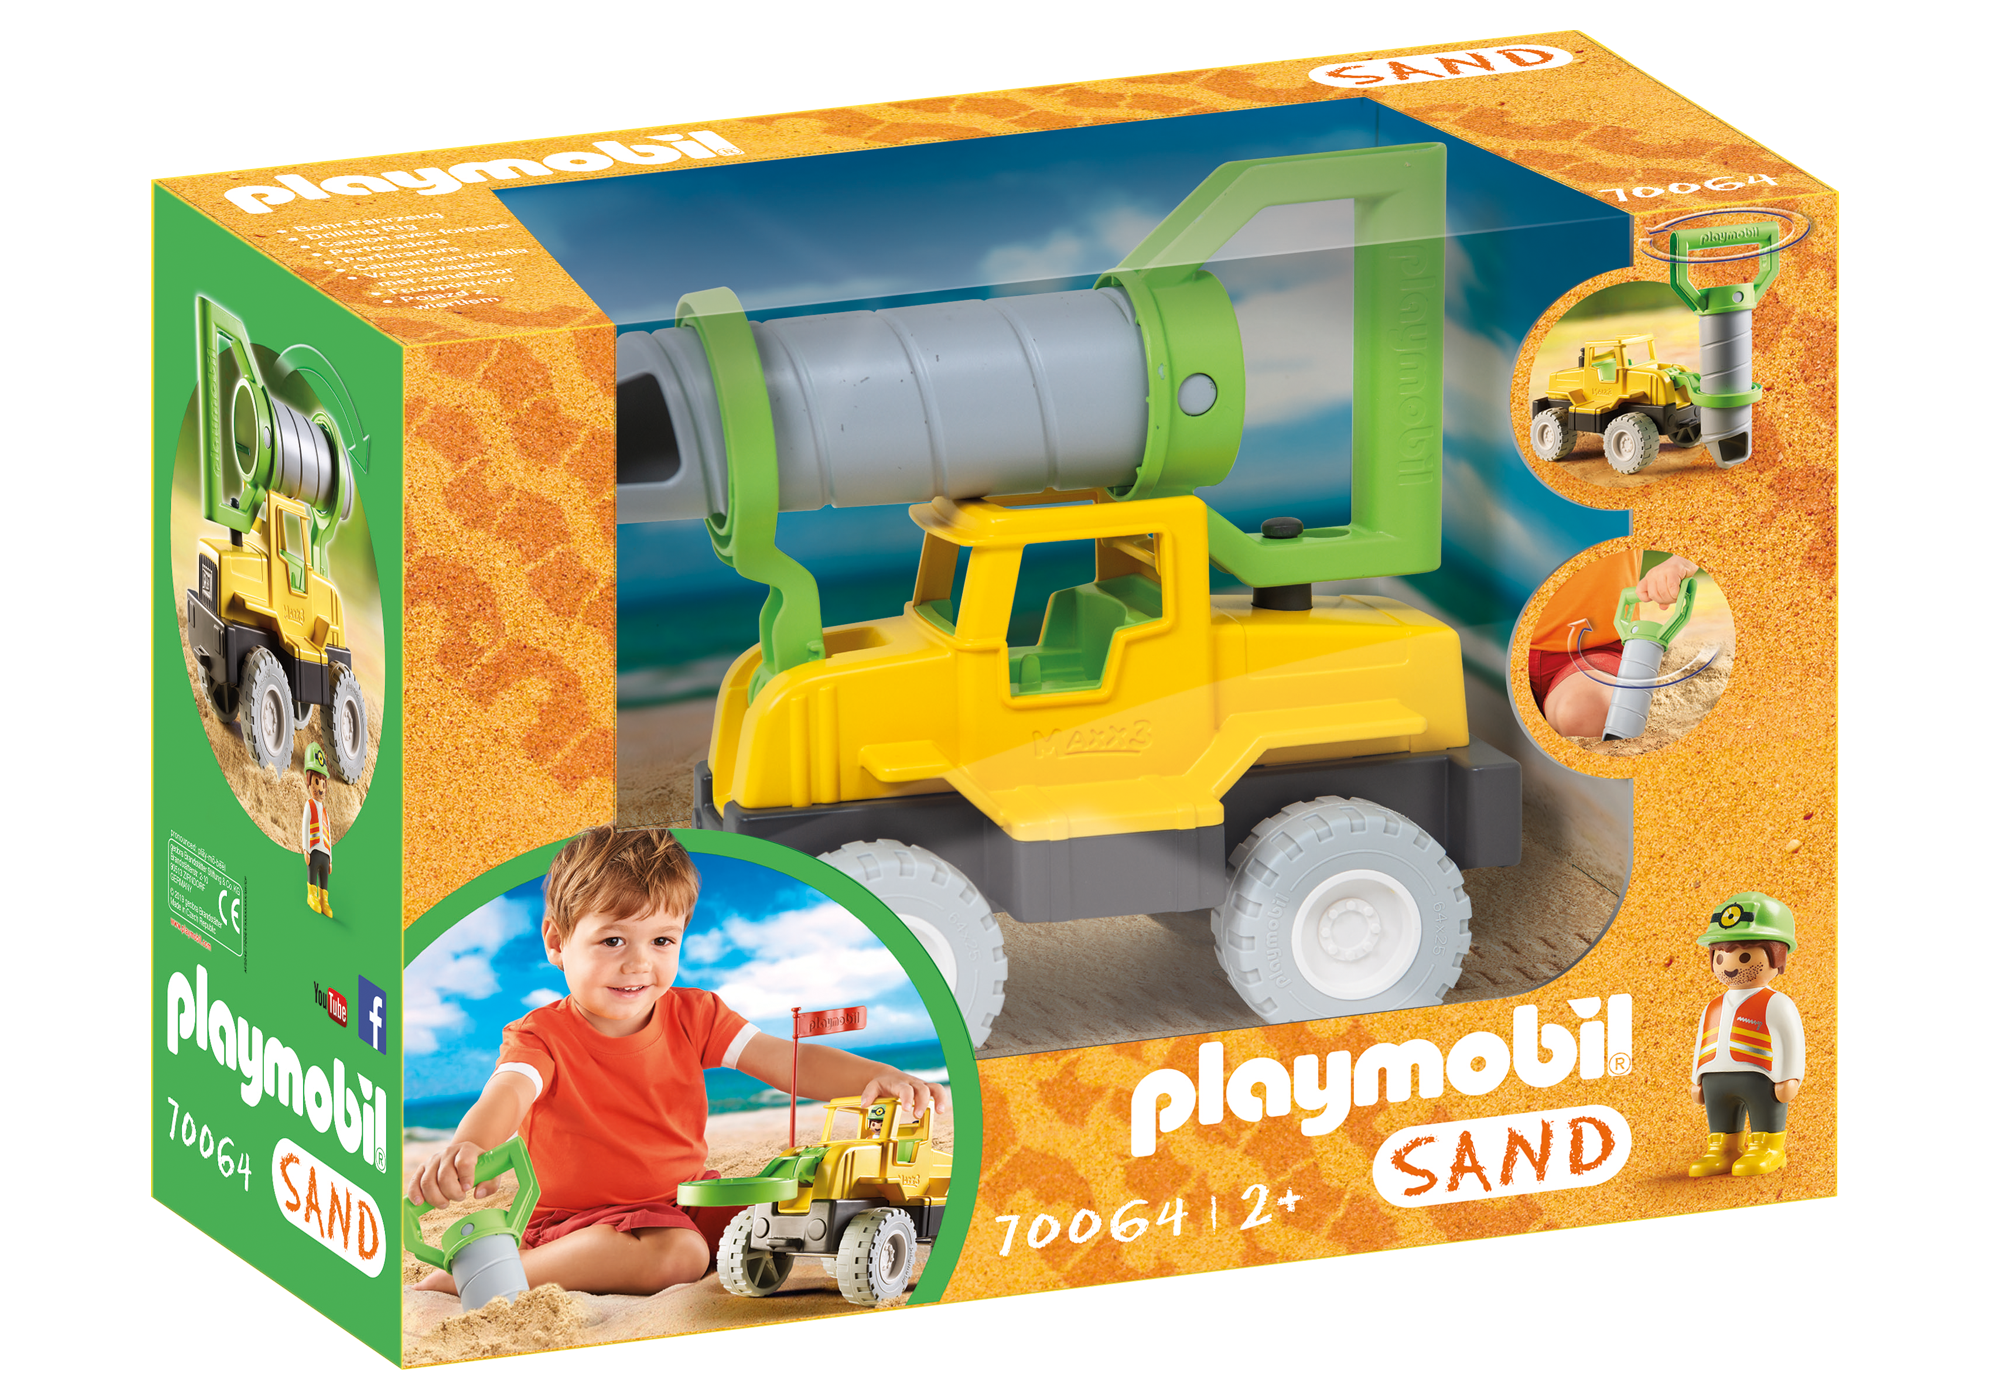 http://media.playmobil.com/i/playmobil/70064_product_box_front